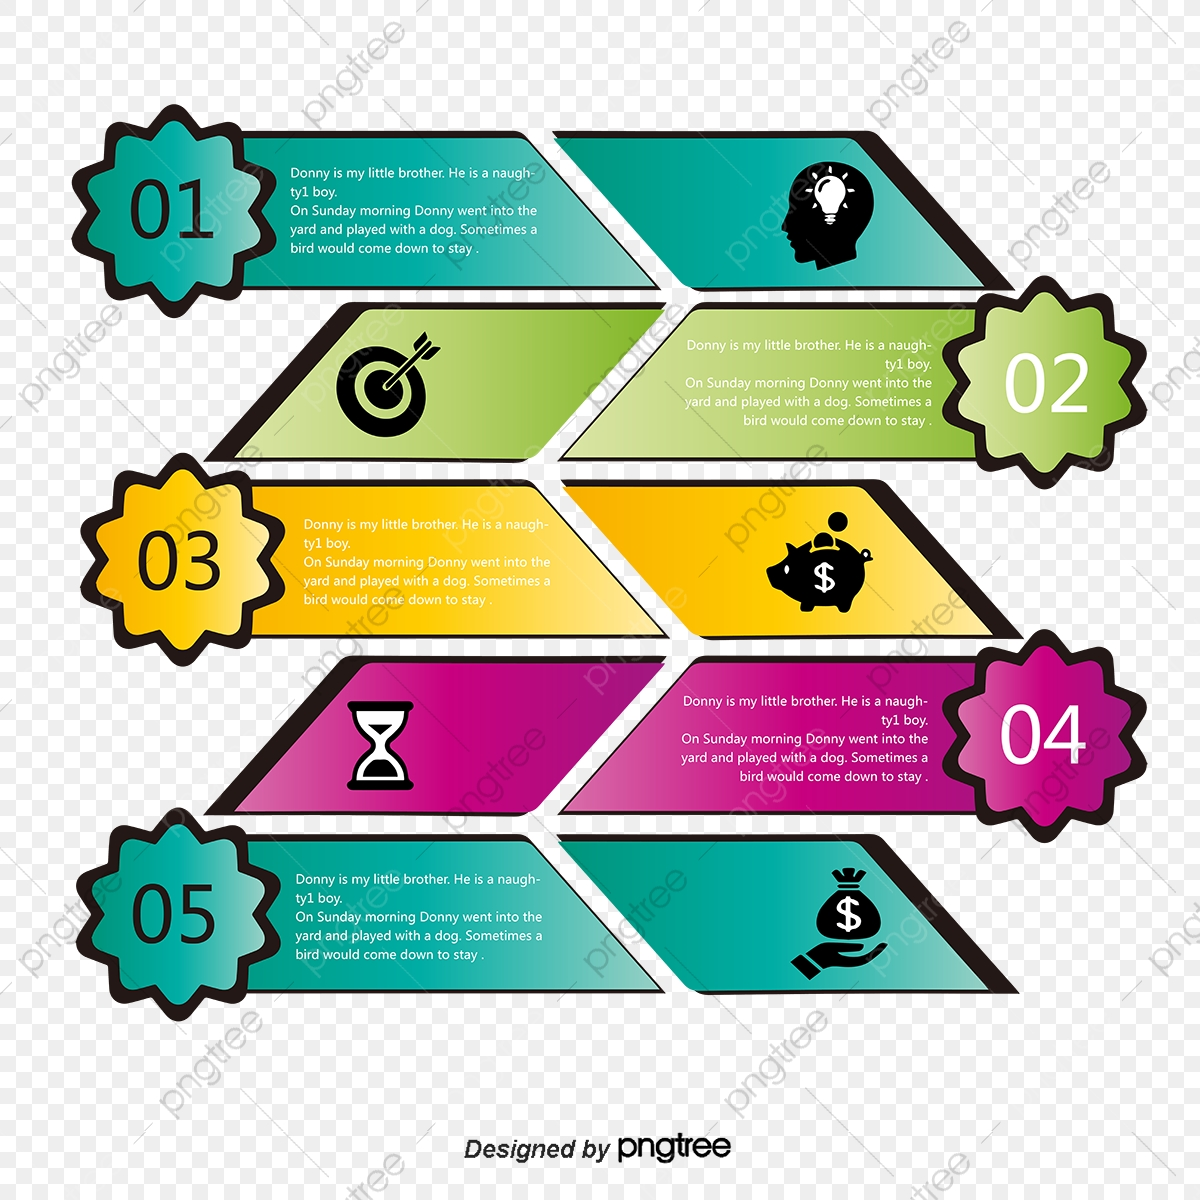 hight resolution of commercial use resource upgrade to premium plan and get license authorization upgradenow flow diagram schematic